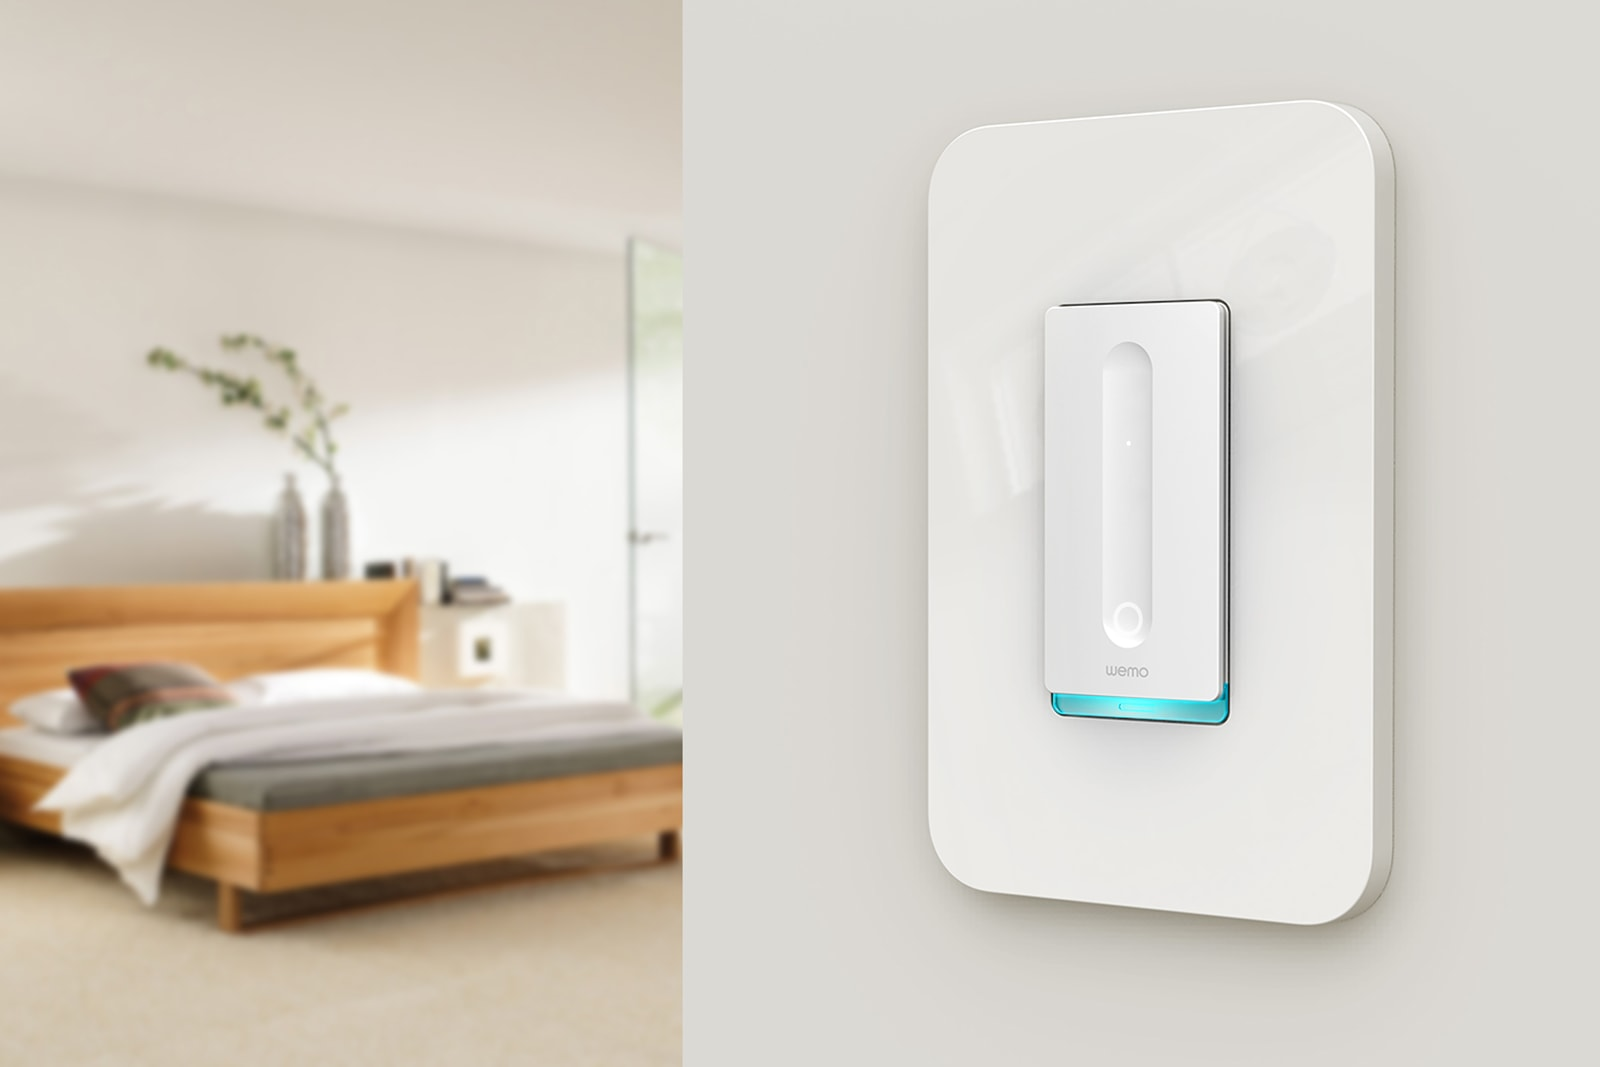 WeMo's smart home upgrades include a dimmer switch